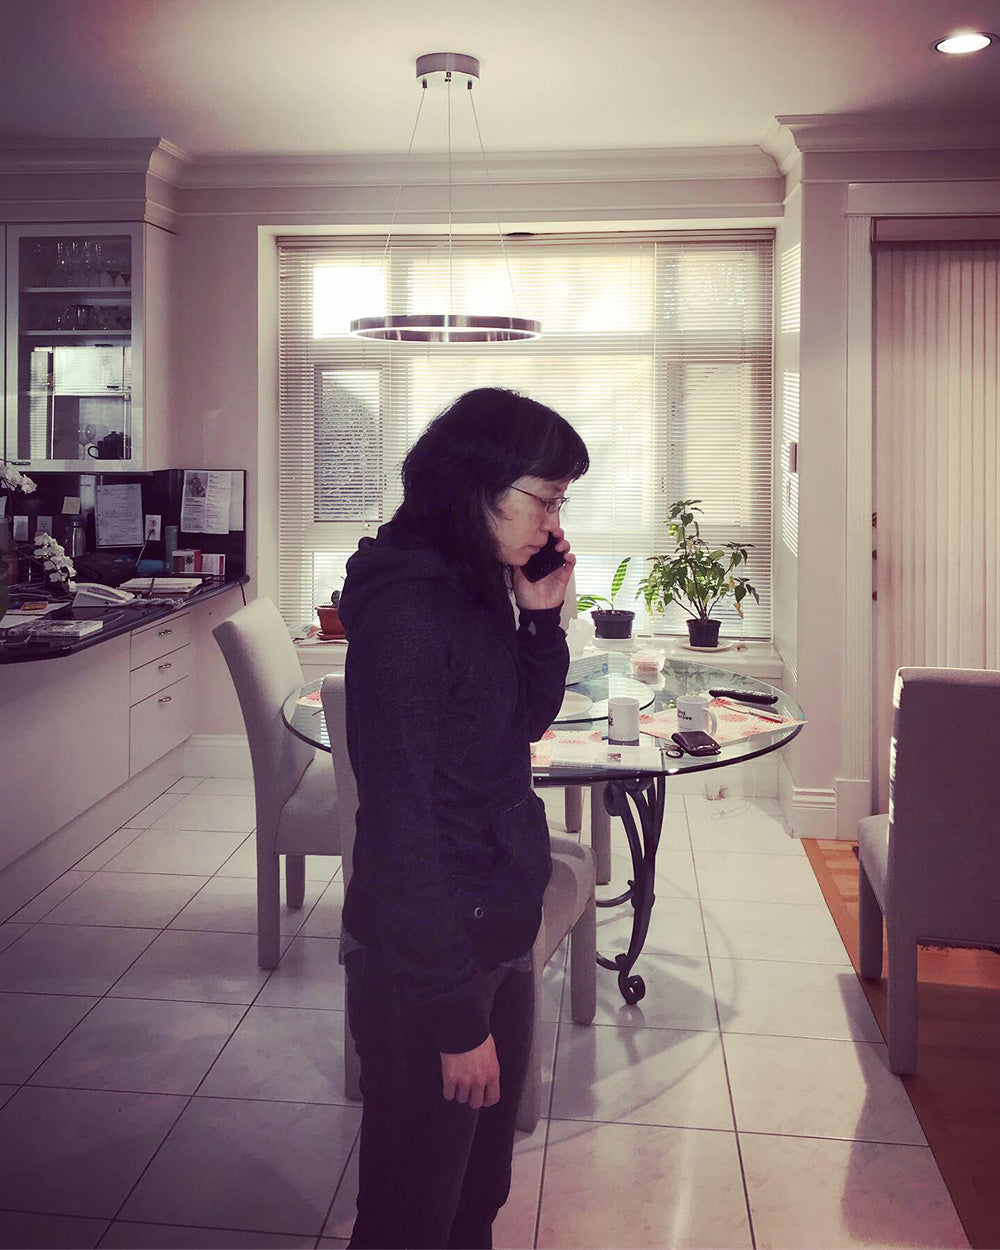 SPITGAN WEBZINE #3. Photo 7. Sis on the phone at home. Vancouver BC